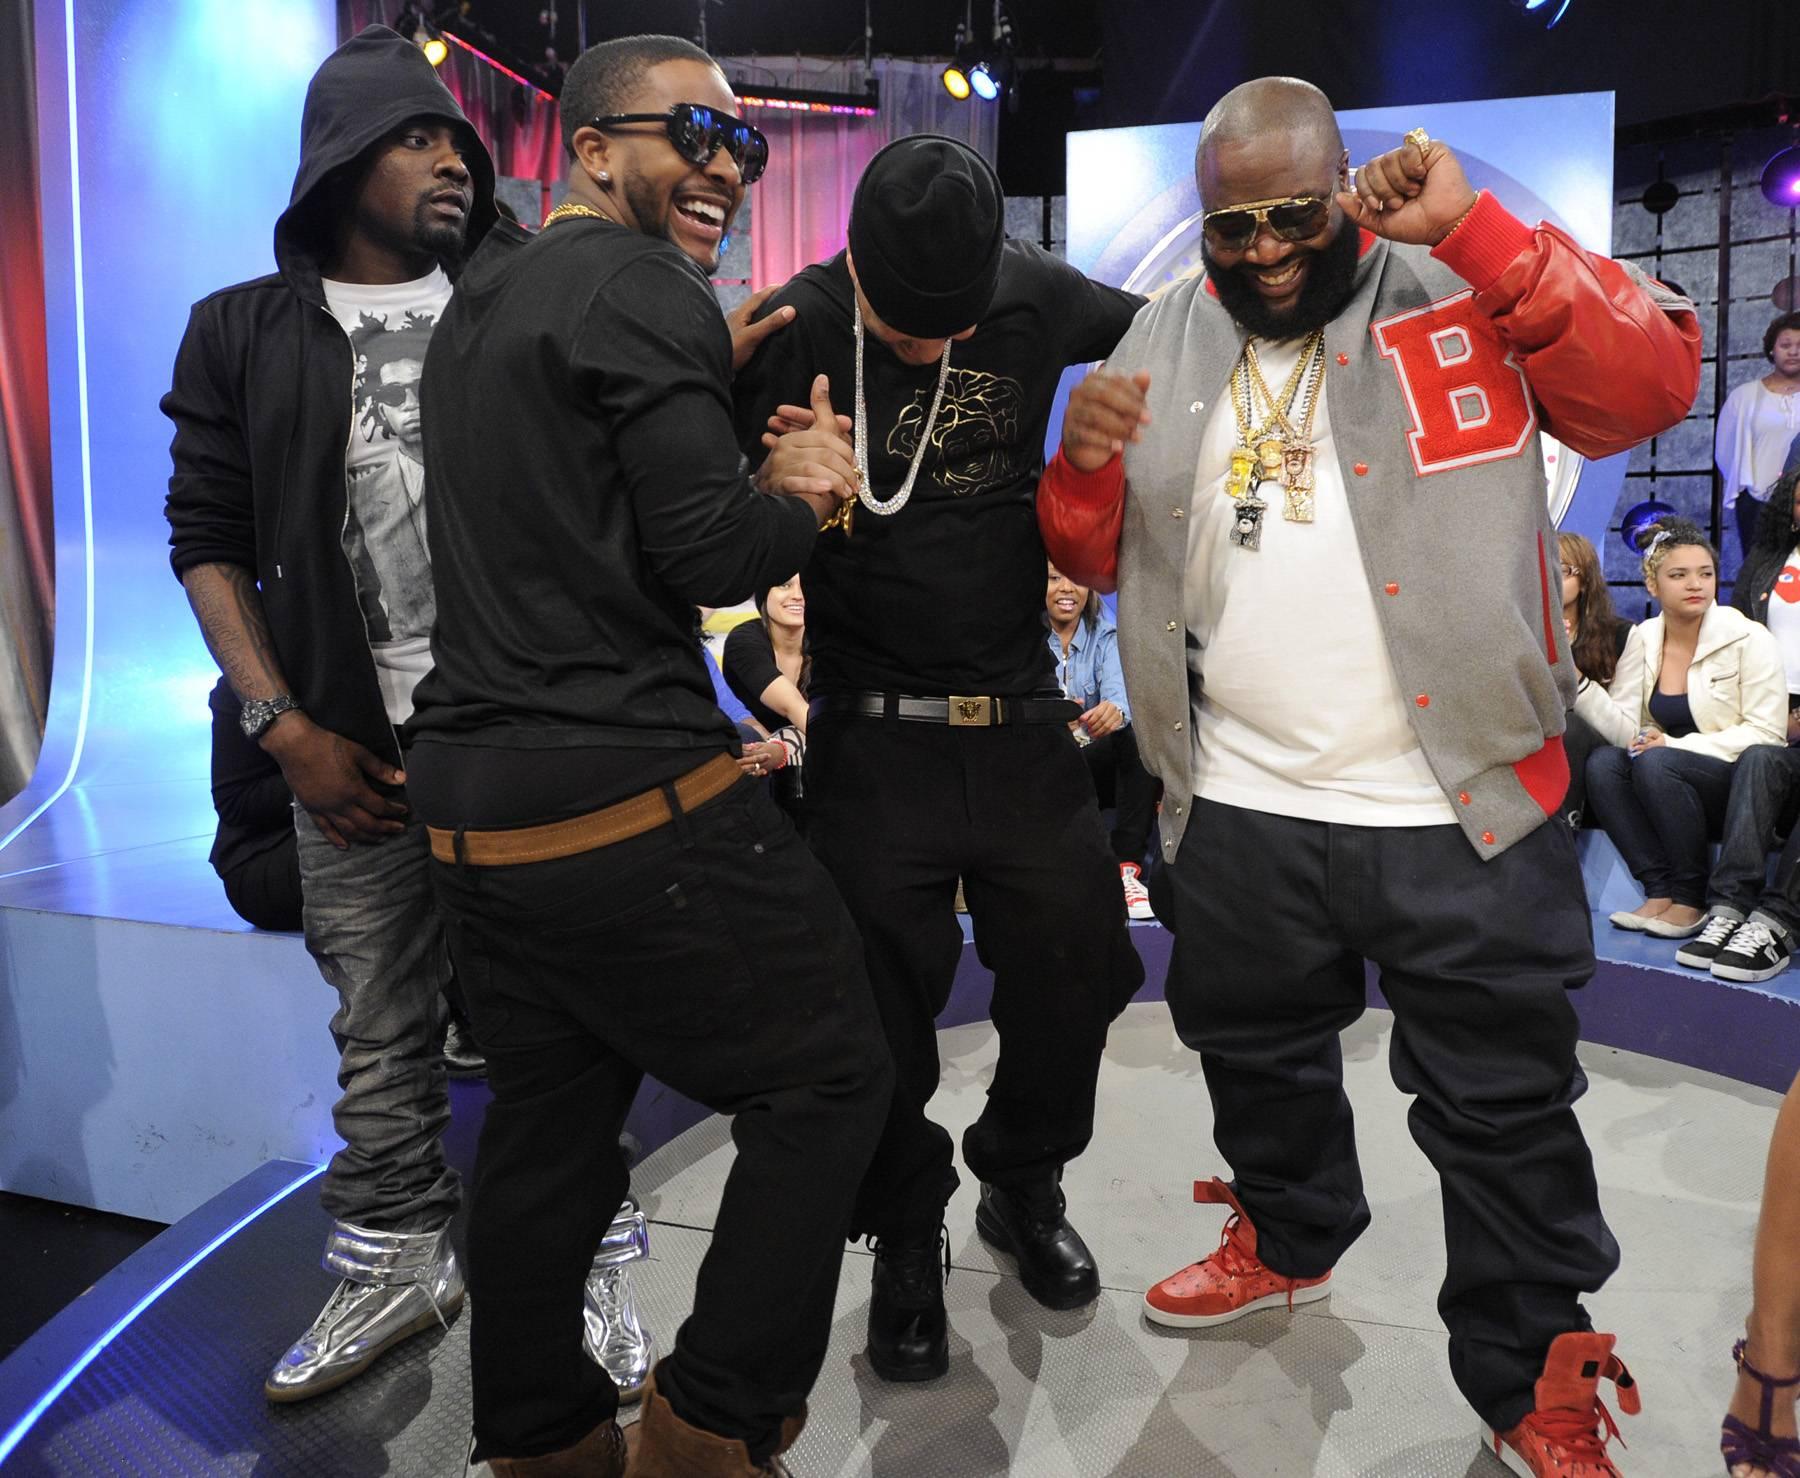 Crew Love - In May 2012, Omarion signed to Rick Ross' Maybach Music Group and joined the ranks of Wale, Meek Mill, Gunplay, Teedra Moses and, of course, Ricky Rozay himself. He appeared on the label's compilation Self Made Vol. 2 and soon announced that he had also signed with Jay-Z's Roc Nation management company. The talented star is set to release a new LP in 2013. (Photo: Jon Ricard/BET)